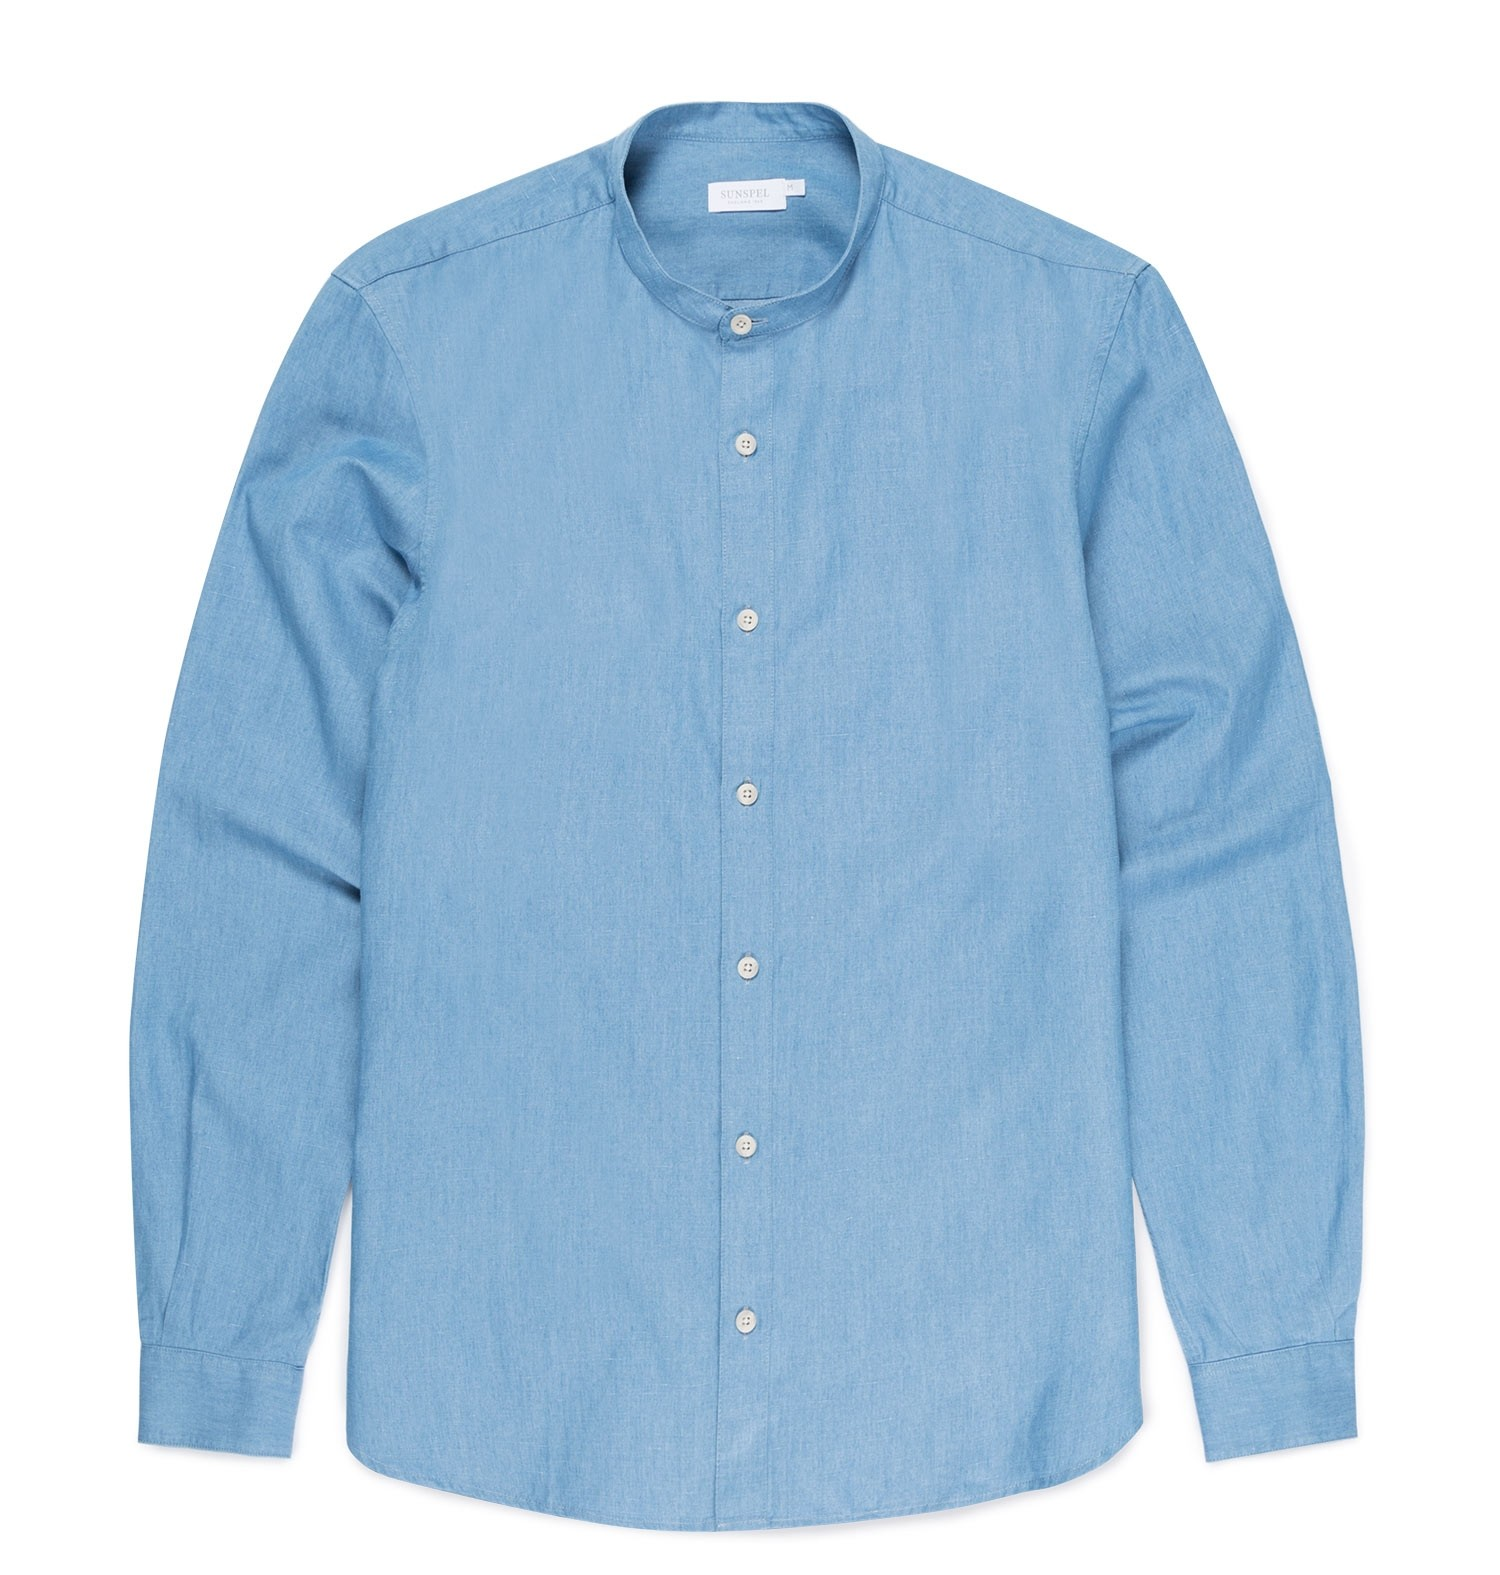 Sunspel Light Blue Denim Men's Cotton Linen Grandad Shirt